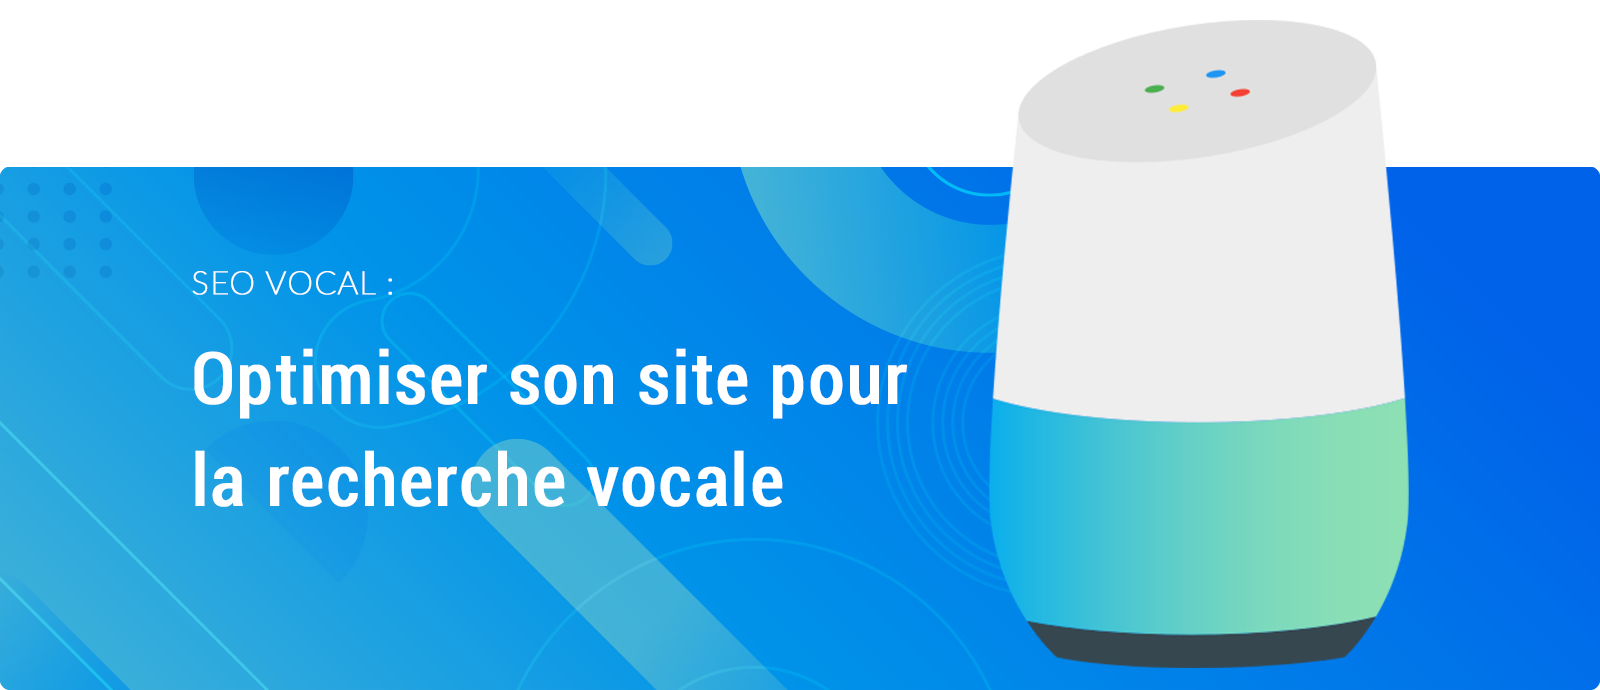 SEO vocal optimiser son site